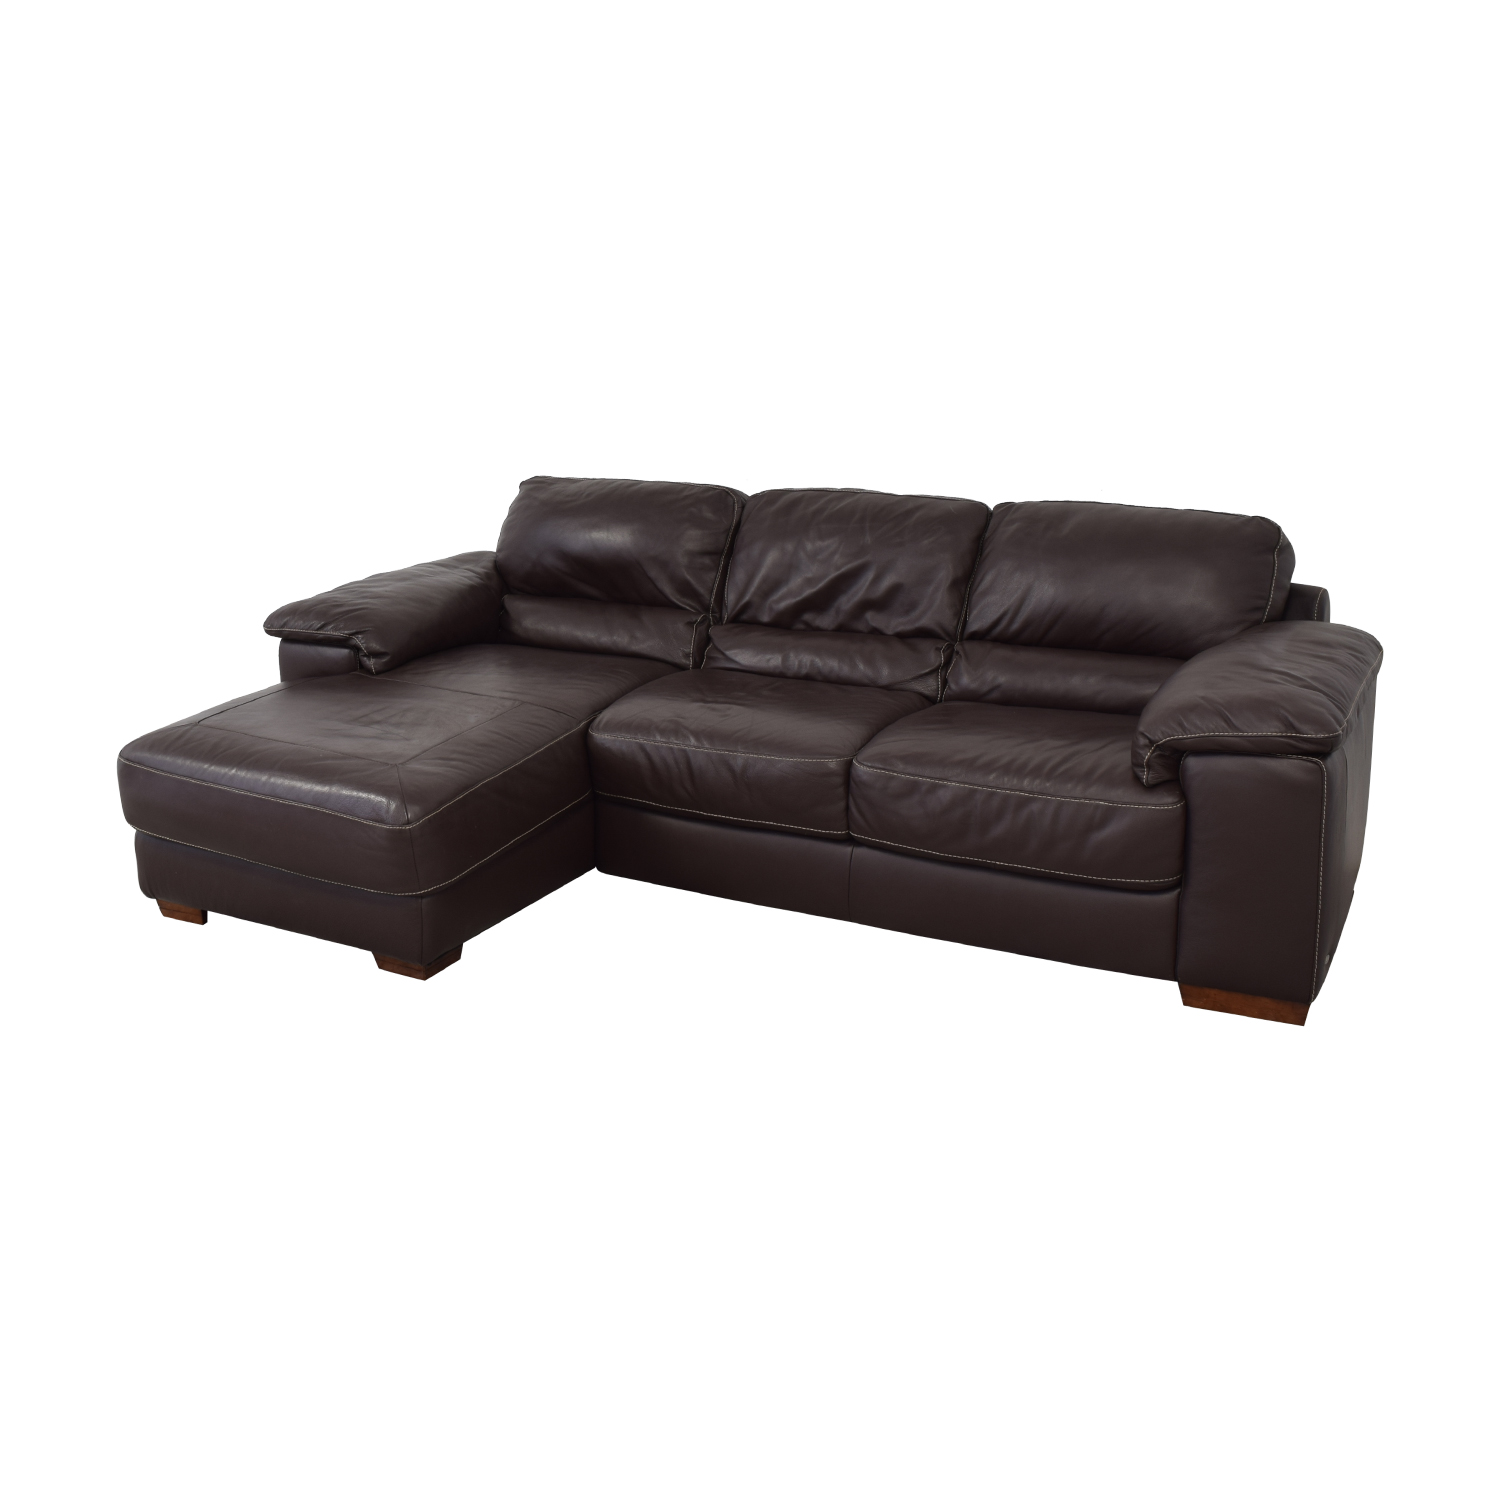 Cindy Crawford Home Cindy Crawford Home Maglie Sectional Sofa for sale